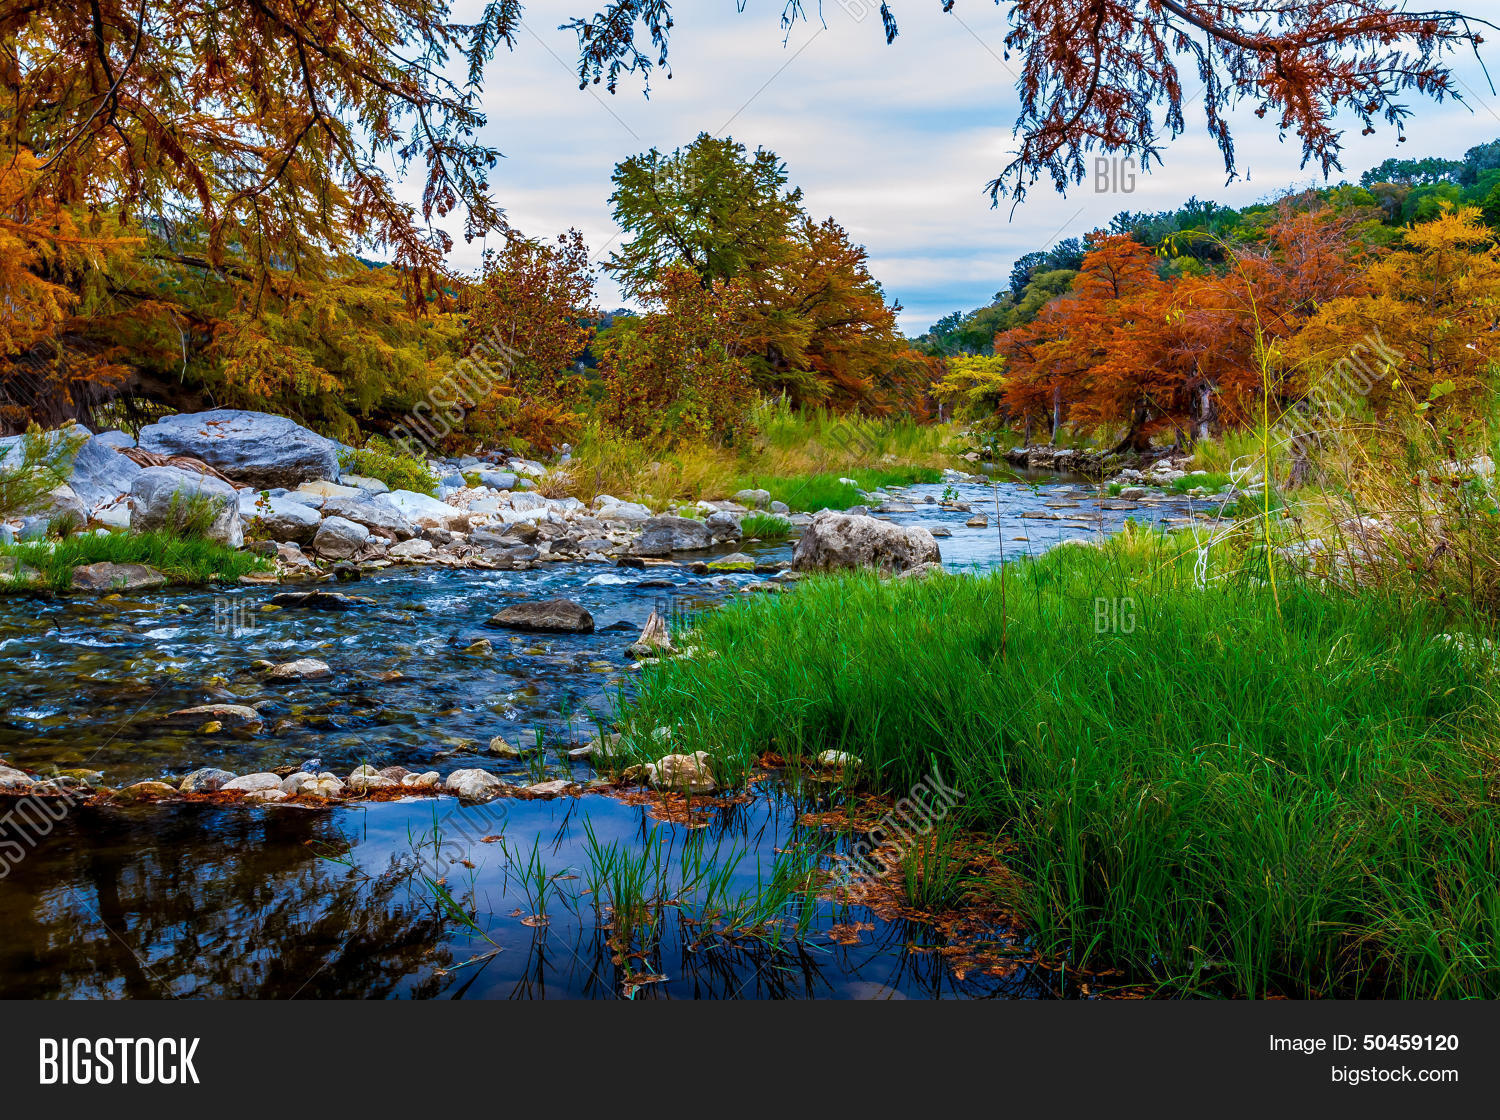 Stunning Fall Colors Image & Photo (Free Trial) | Bigstock